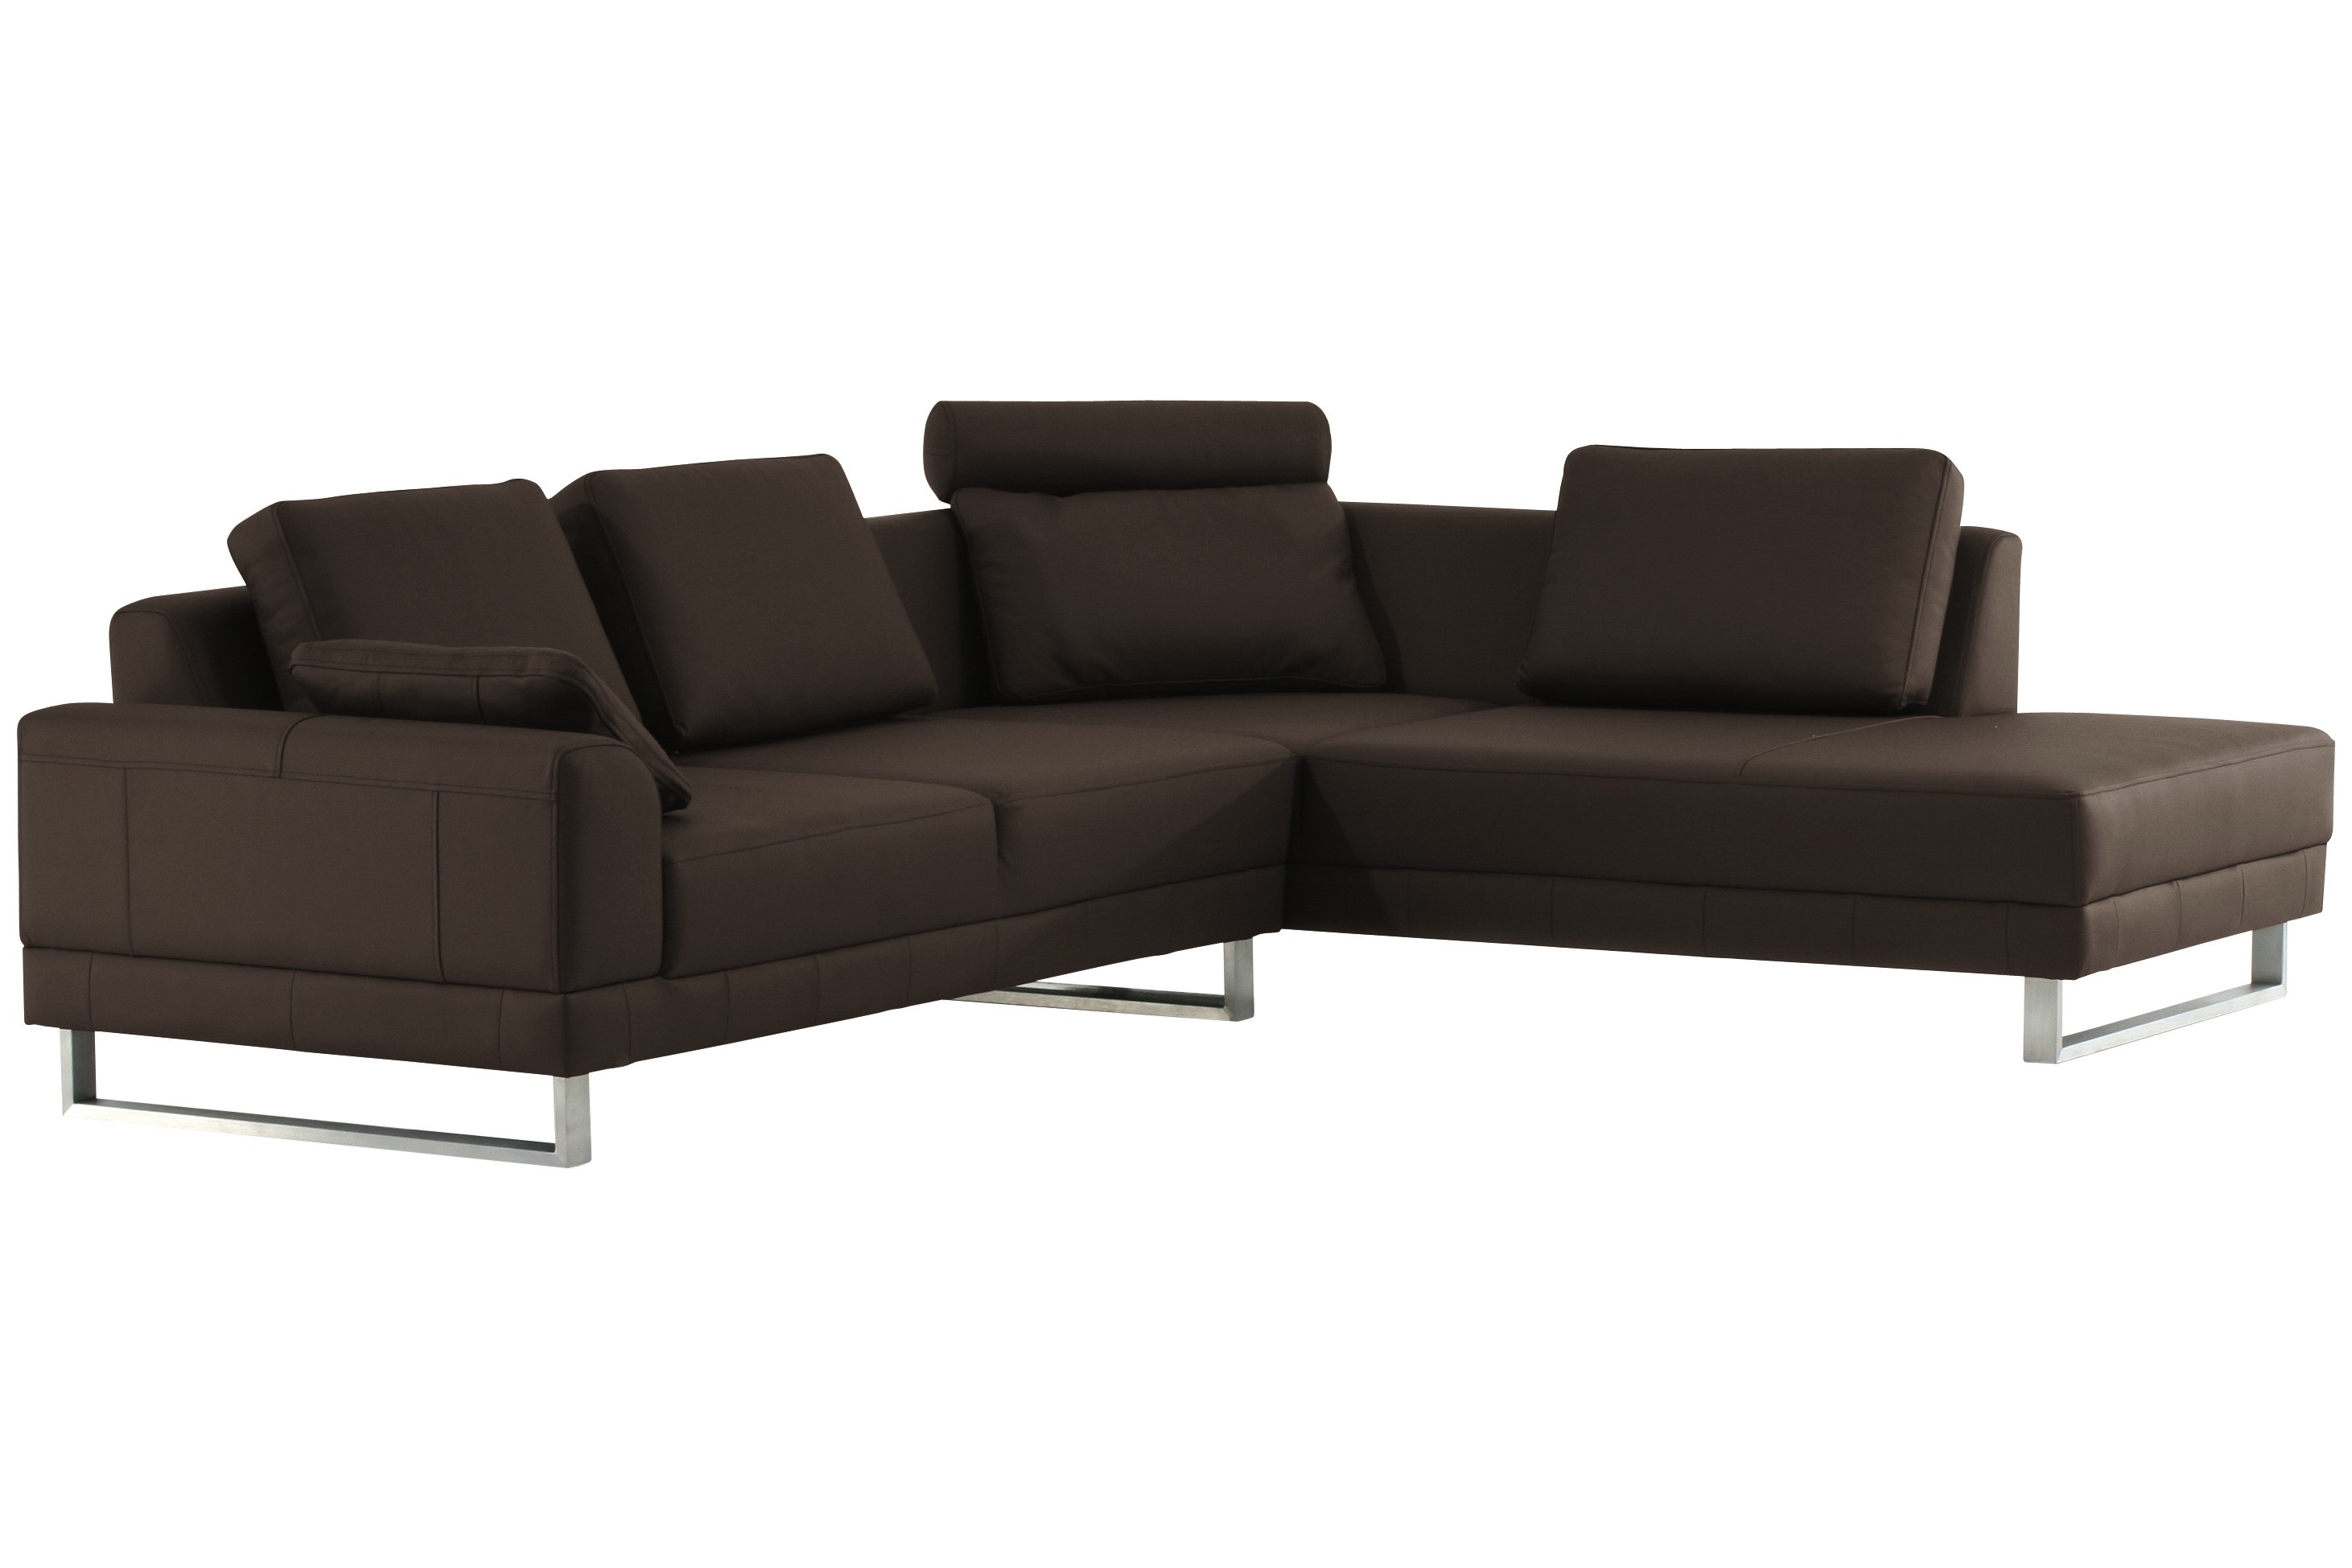 ecksofa leder braun g nstig inspirierendes design f r wohnm bel. Black Bedroom Furniture Sets. Home Design Ideas